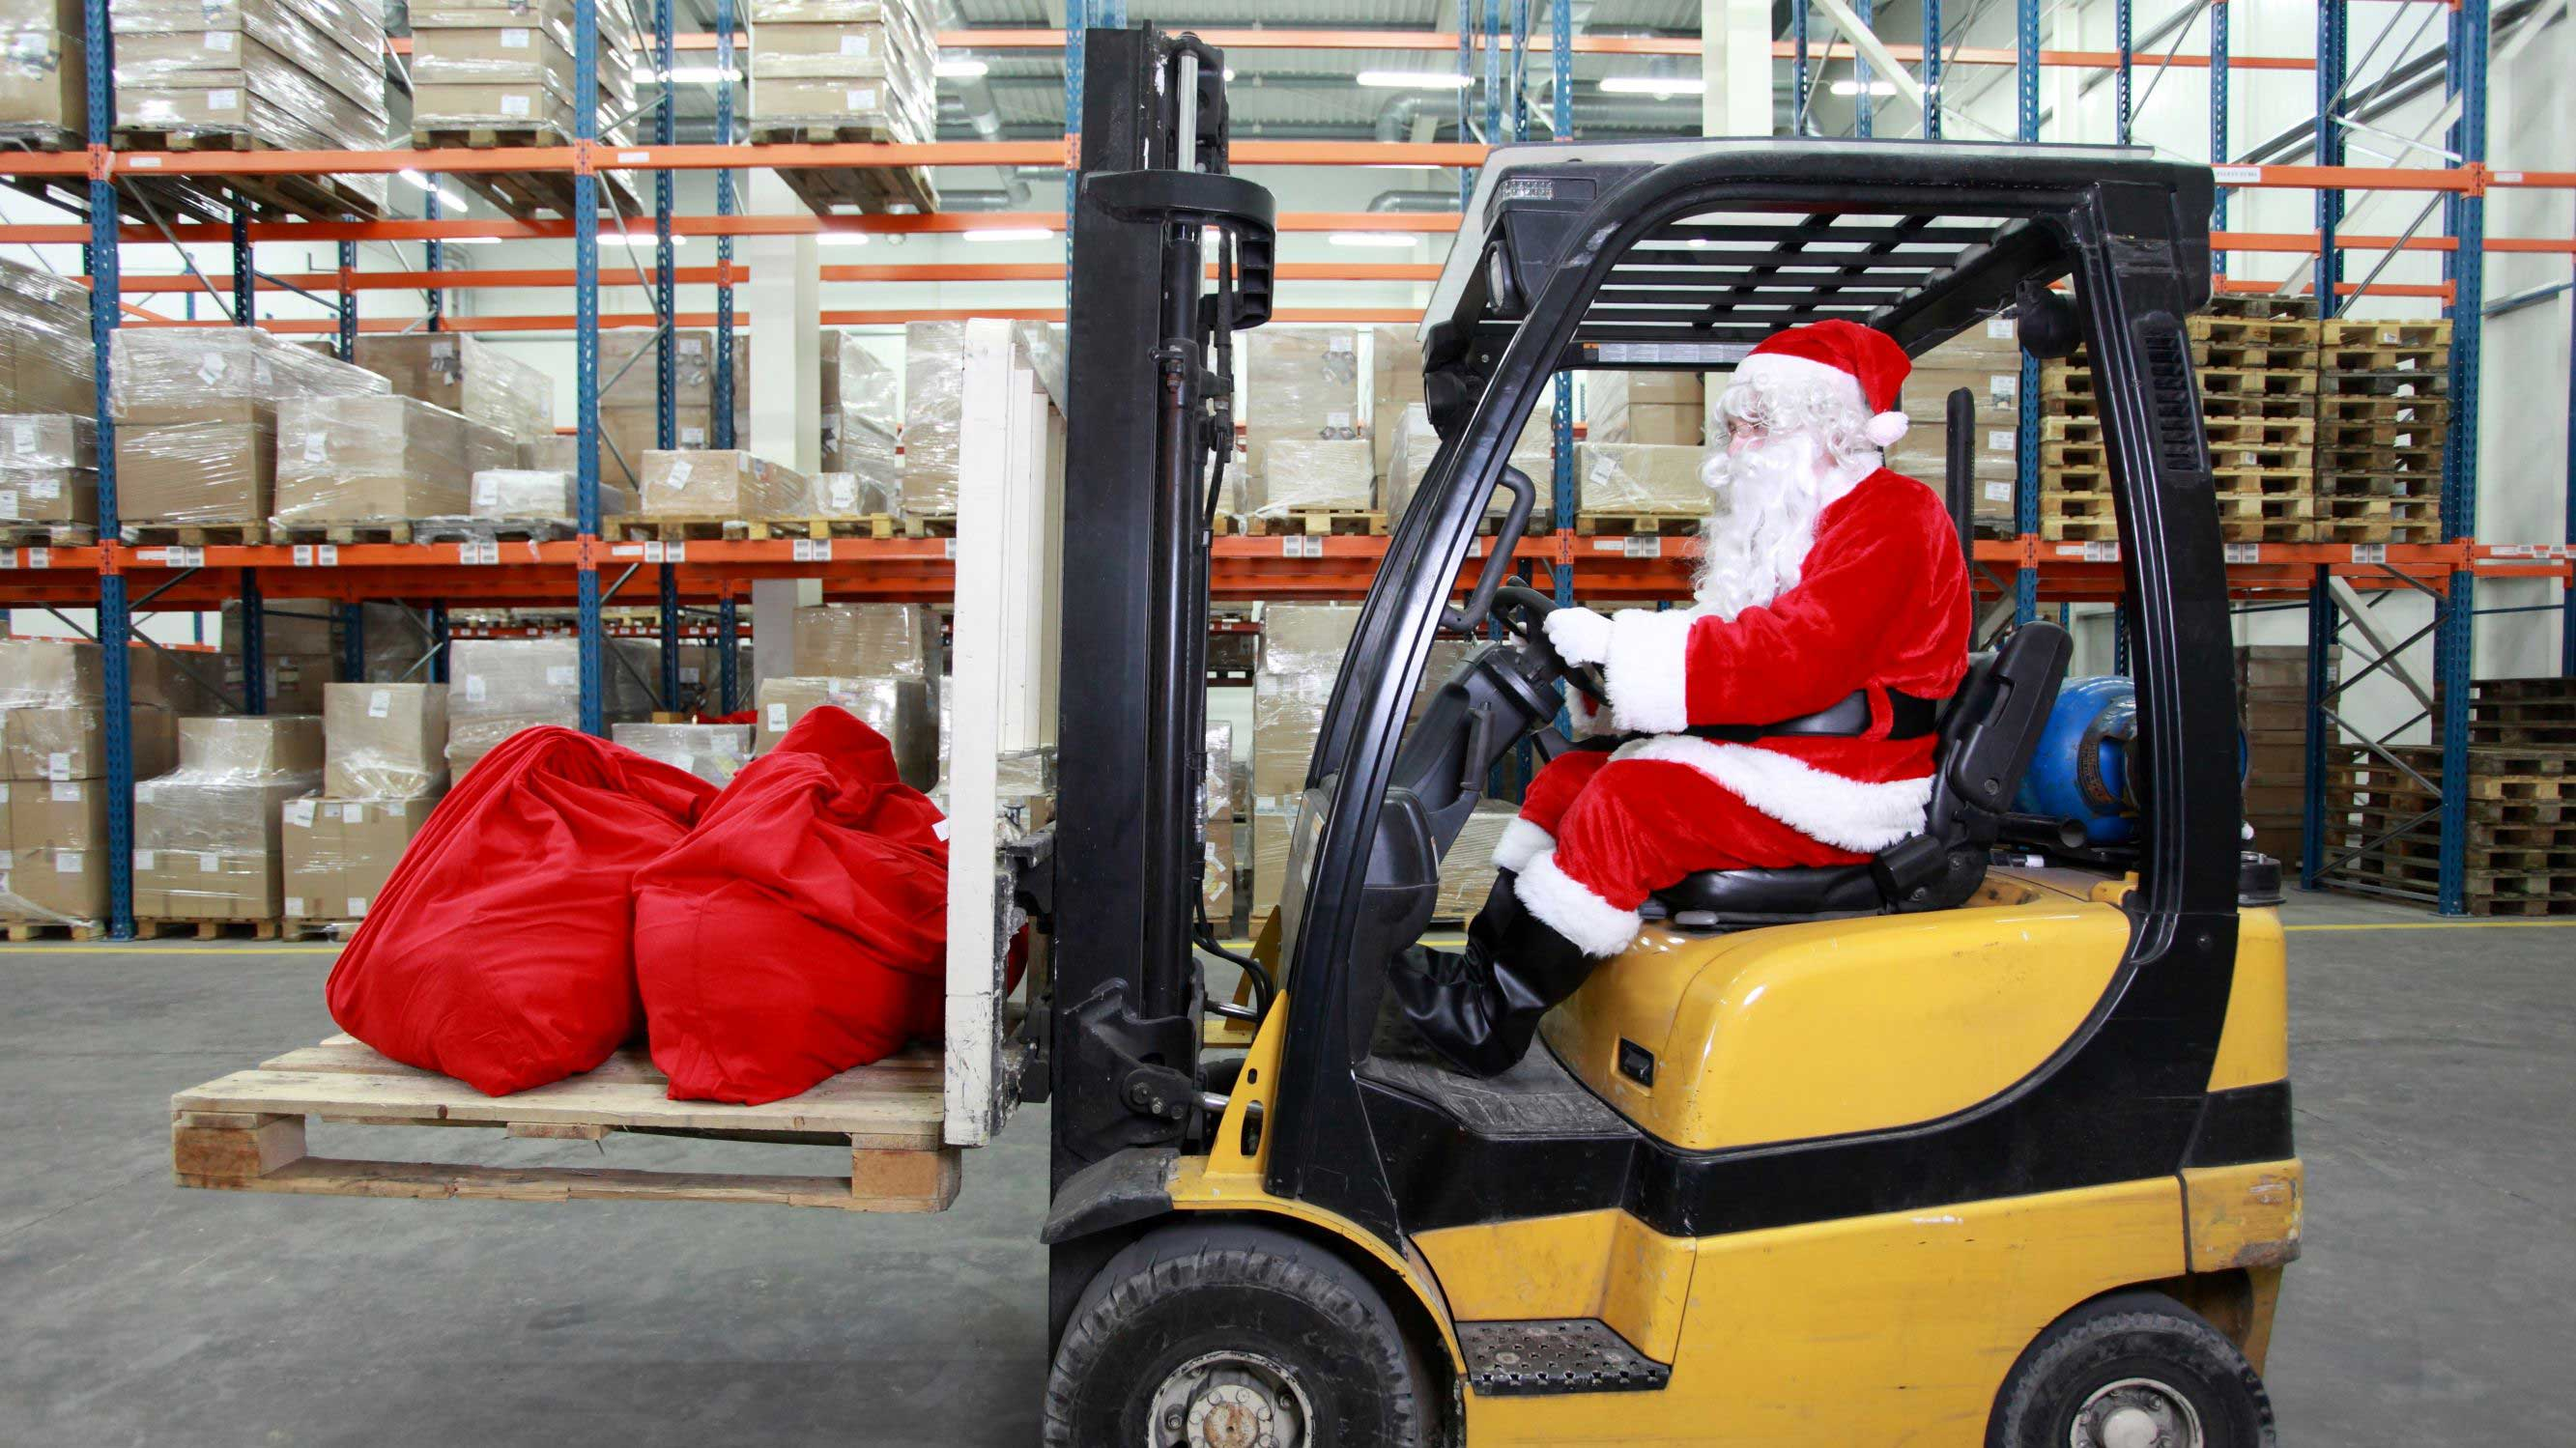 Happy Holidays from Industrial Forklift Truck